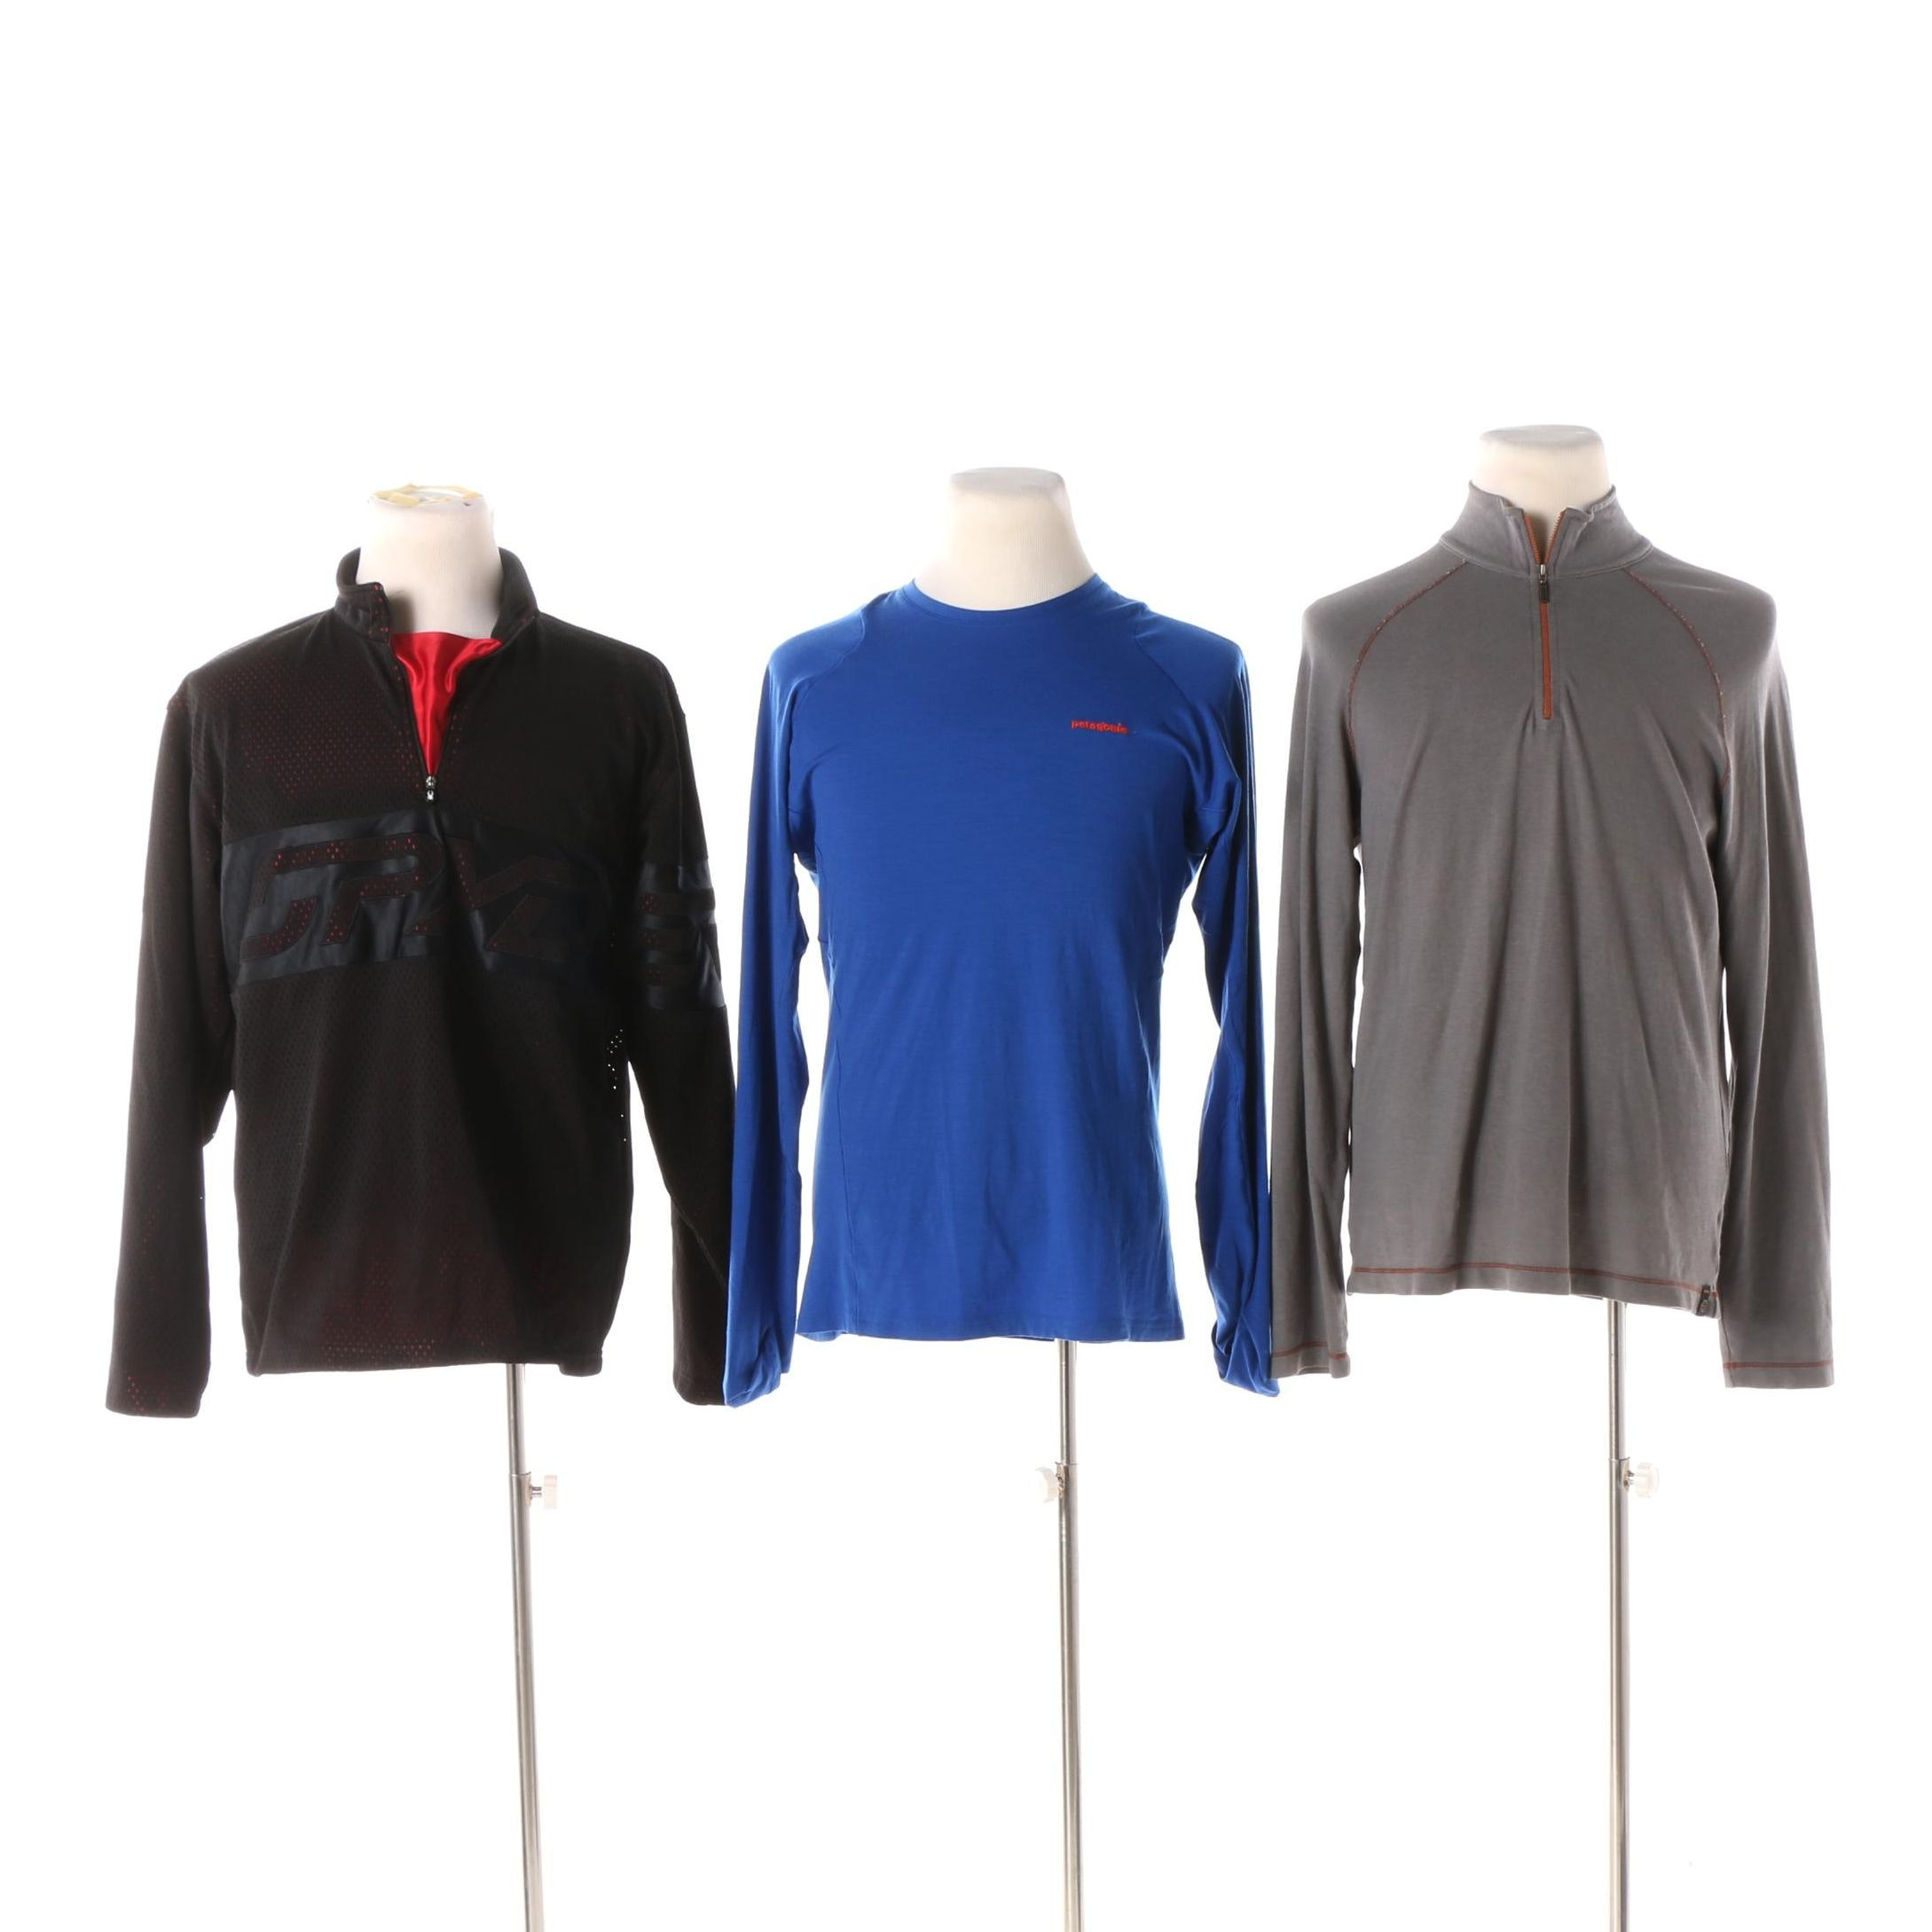 Men's Activewear Tops including Spyder, Patagonia and Agave